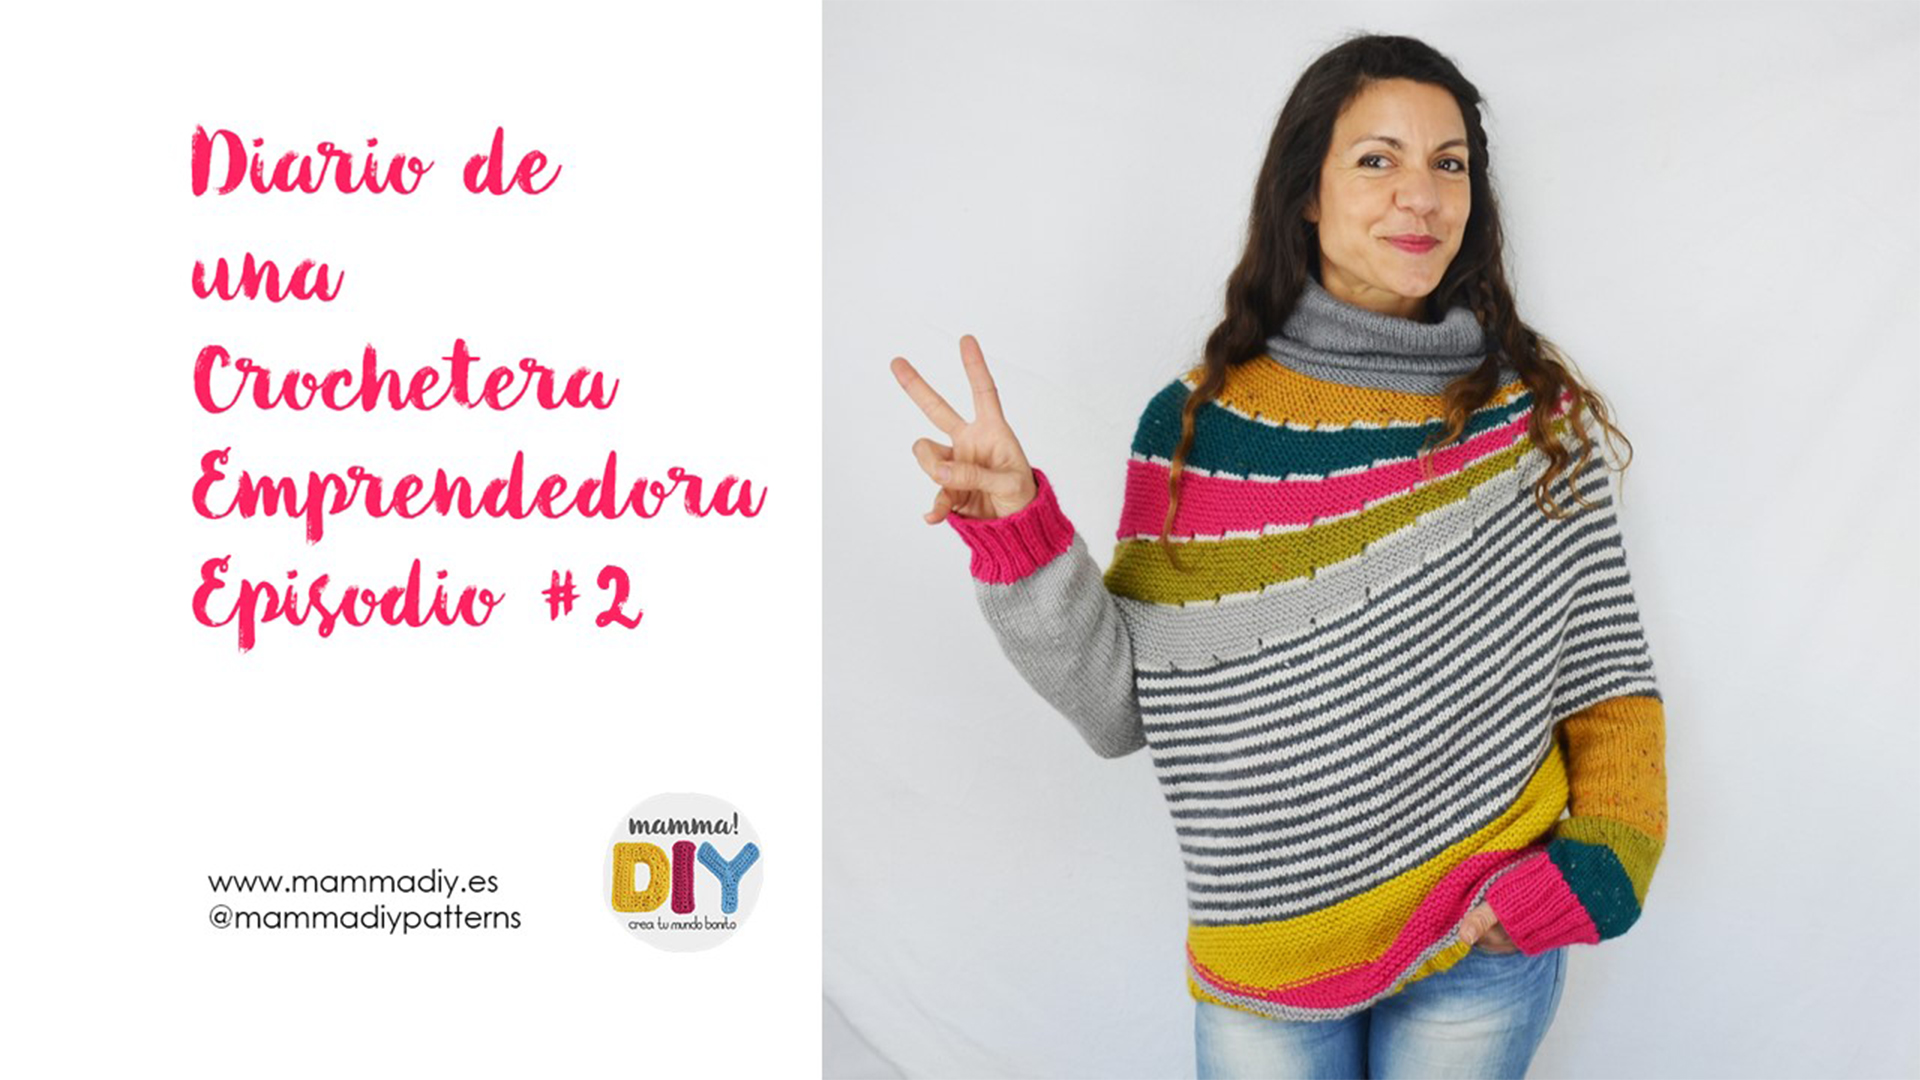 crochetera emprendedora mammadiypatterns podcast